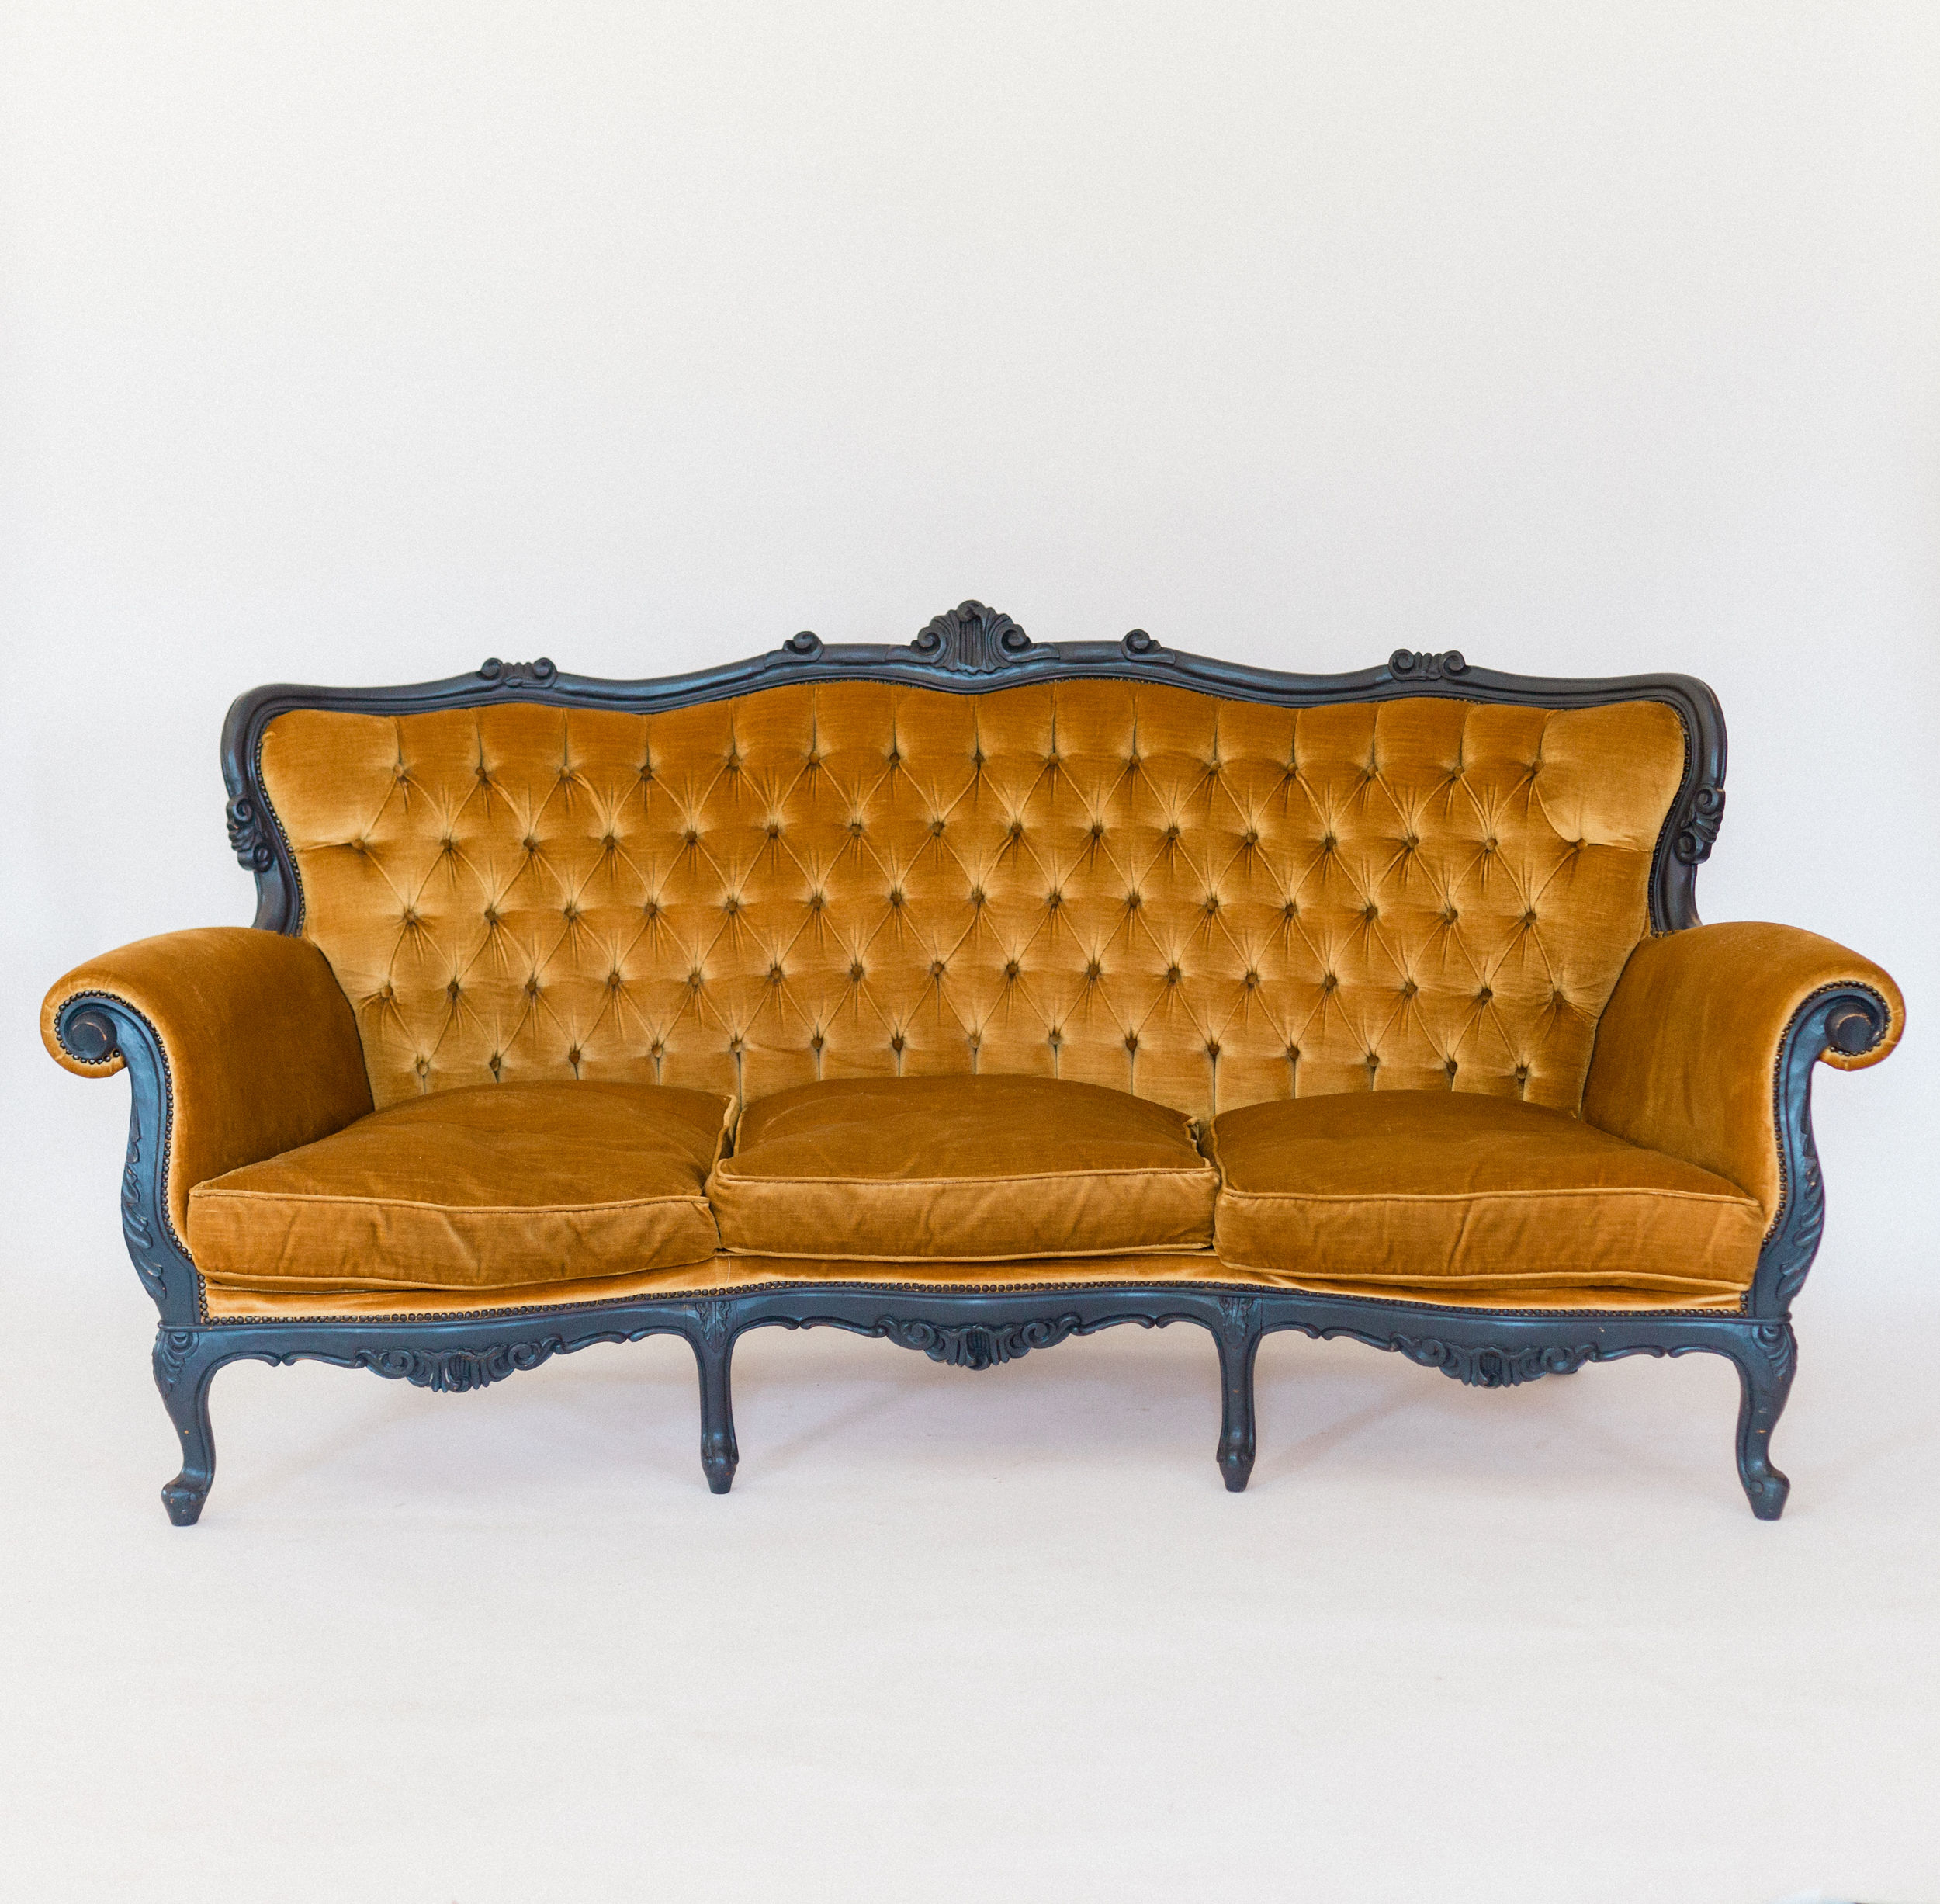 Callie Sofa — Greenhouse Picker Sisters Throughout Callie Sofa Chairs (Photo 8 of 20)